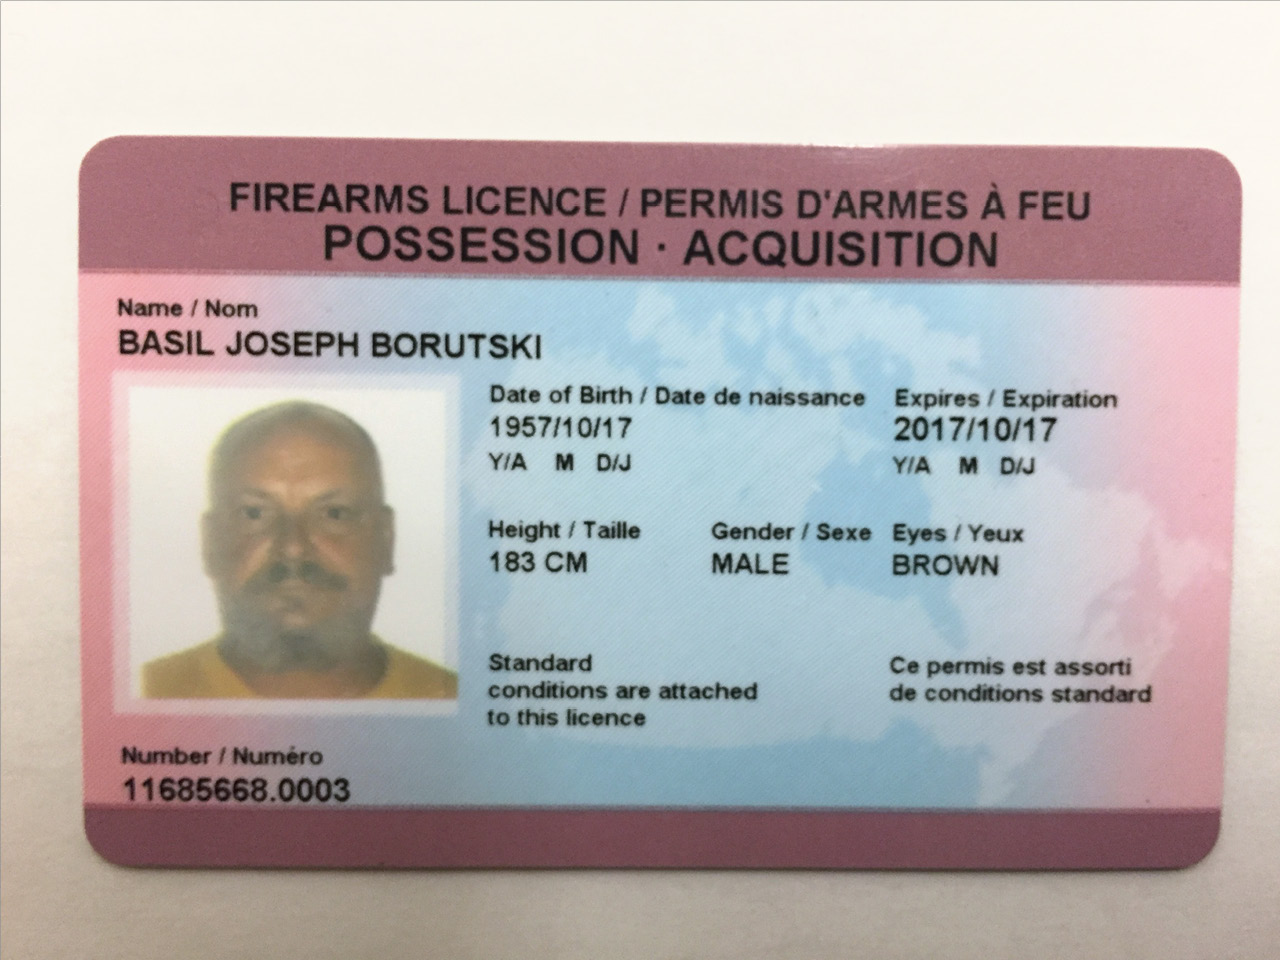 Basil Borutski was carrying a gun licence when he was arrested, even though he was under a weapons ban at the time.